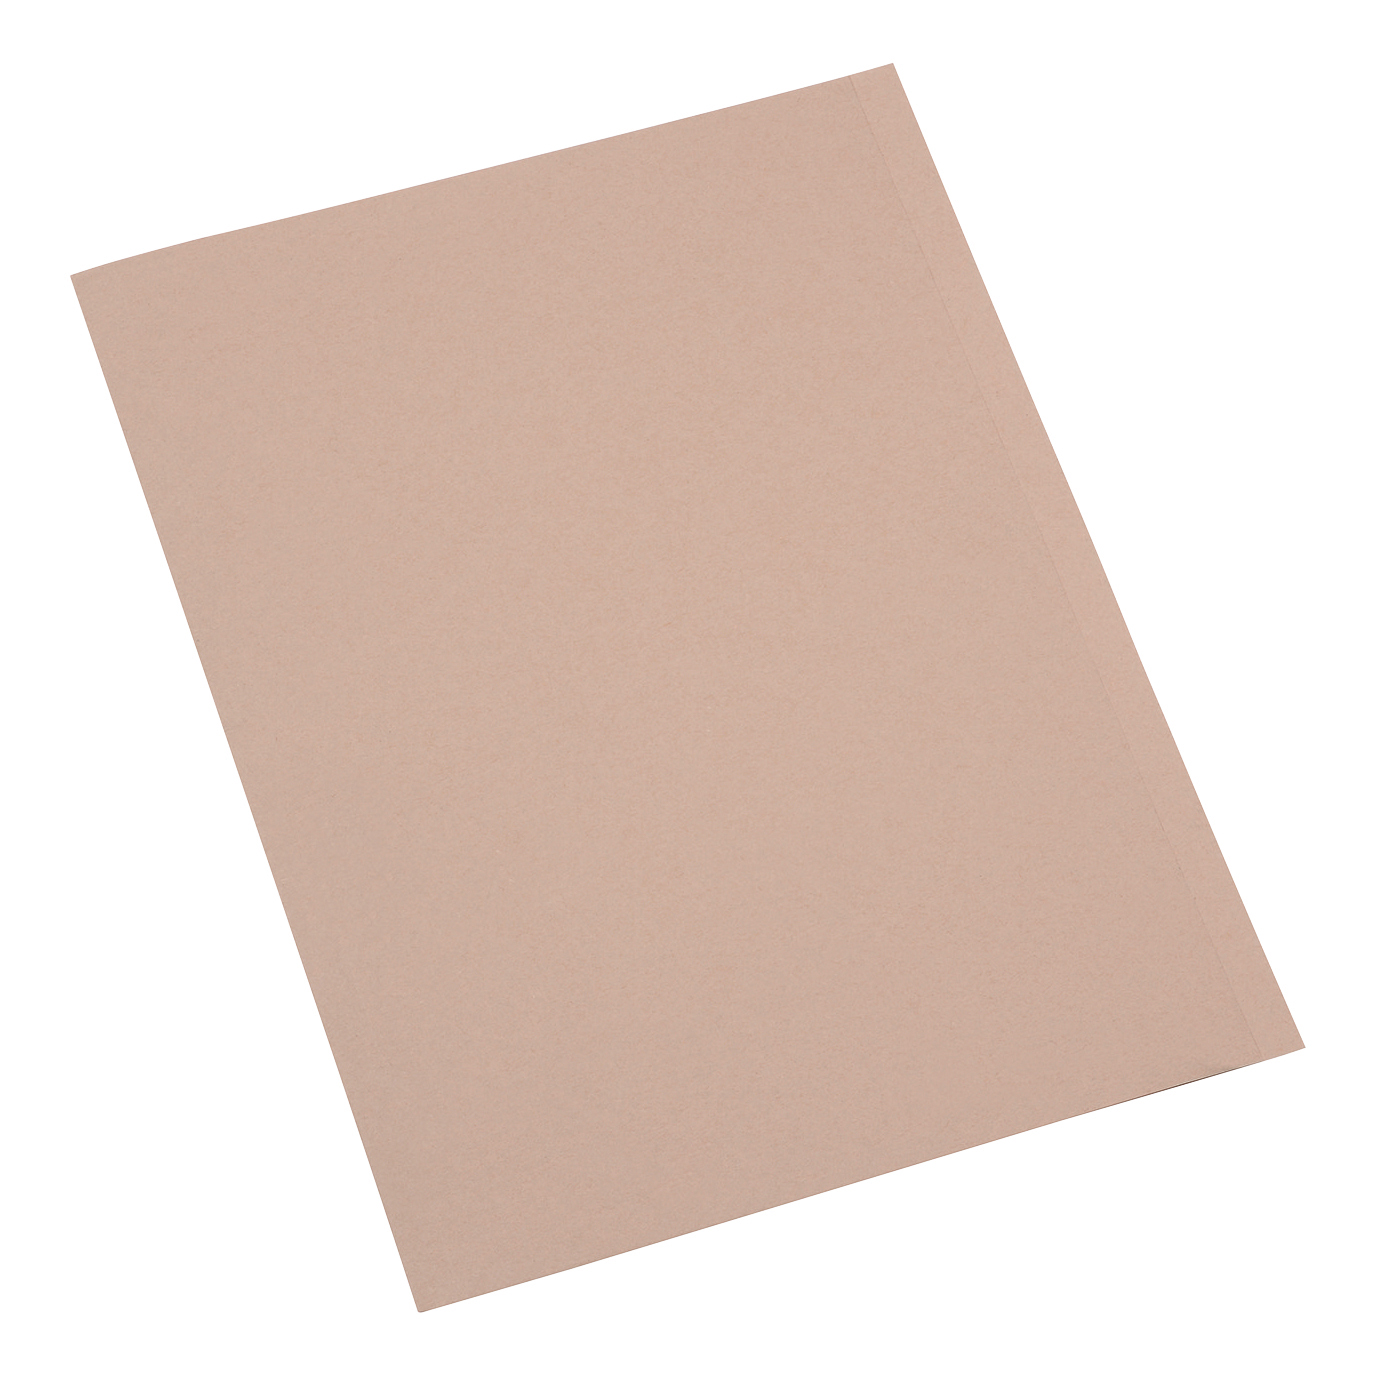 Square Cut Folders 5 Star Office Square Cut Folder Recycled 250gsm A4 Buff Pack 100